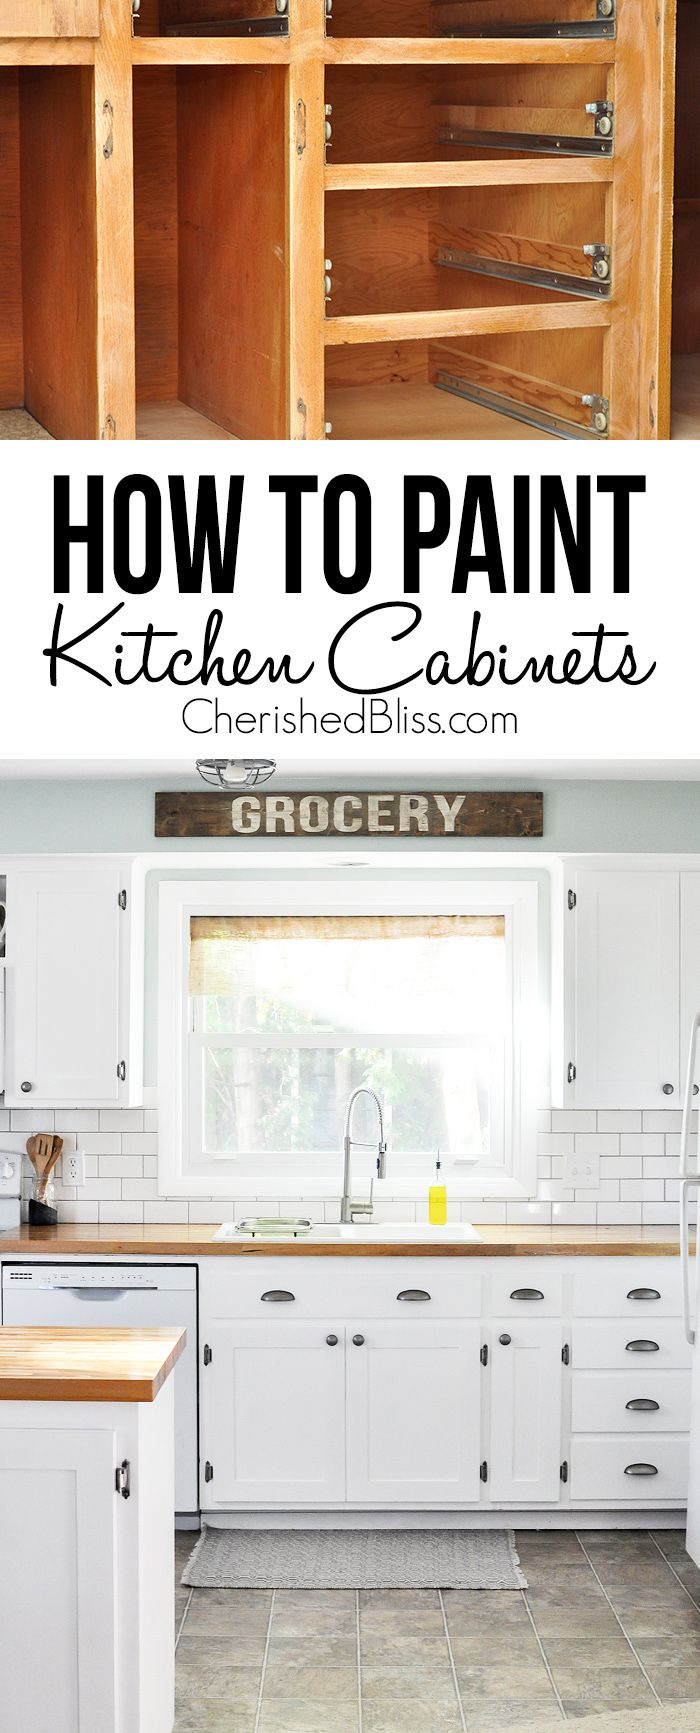 Keuken Renoveren Ideeen Tips On How To Paint Kitchen Cabinets Keuken Pinterest